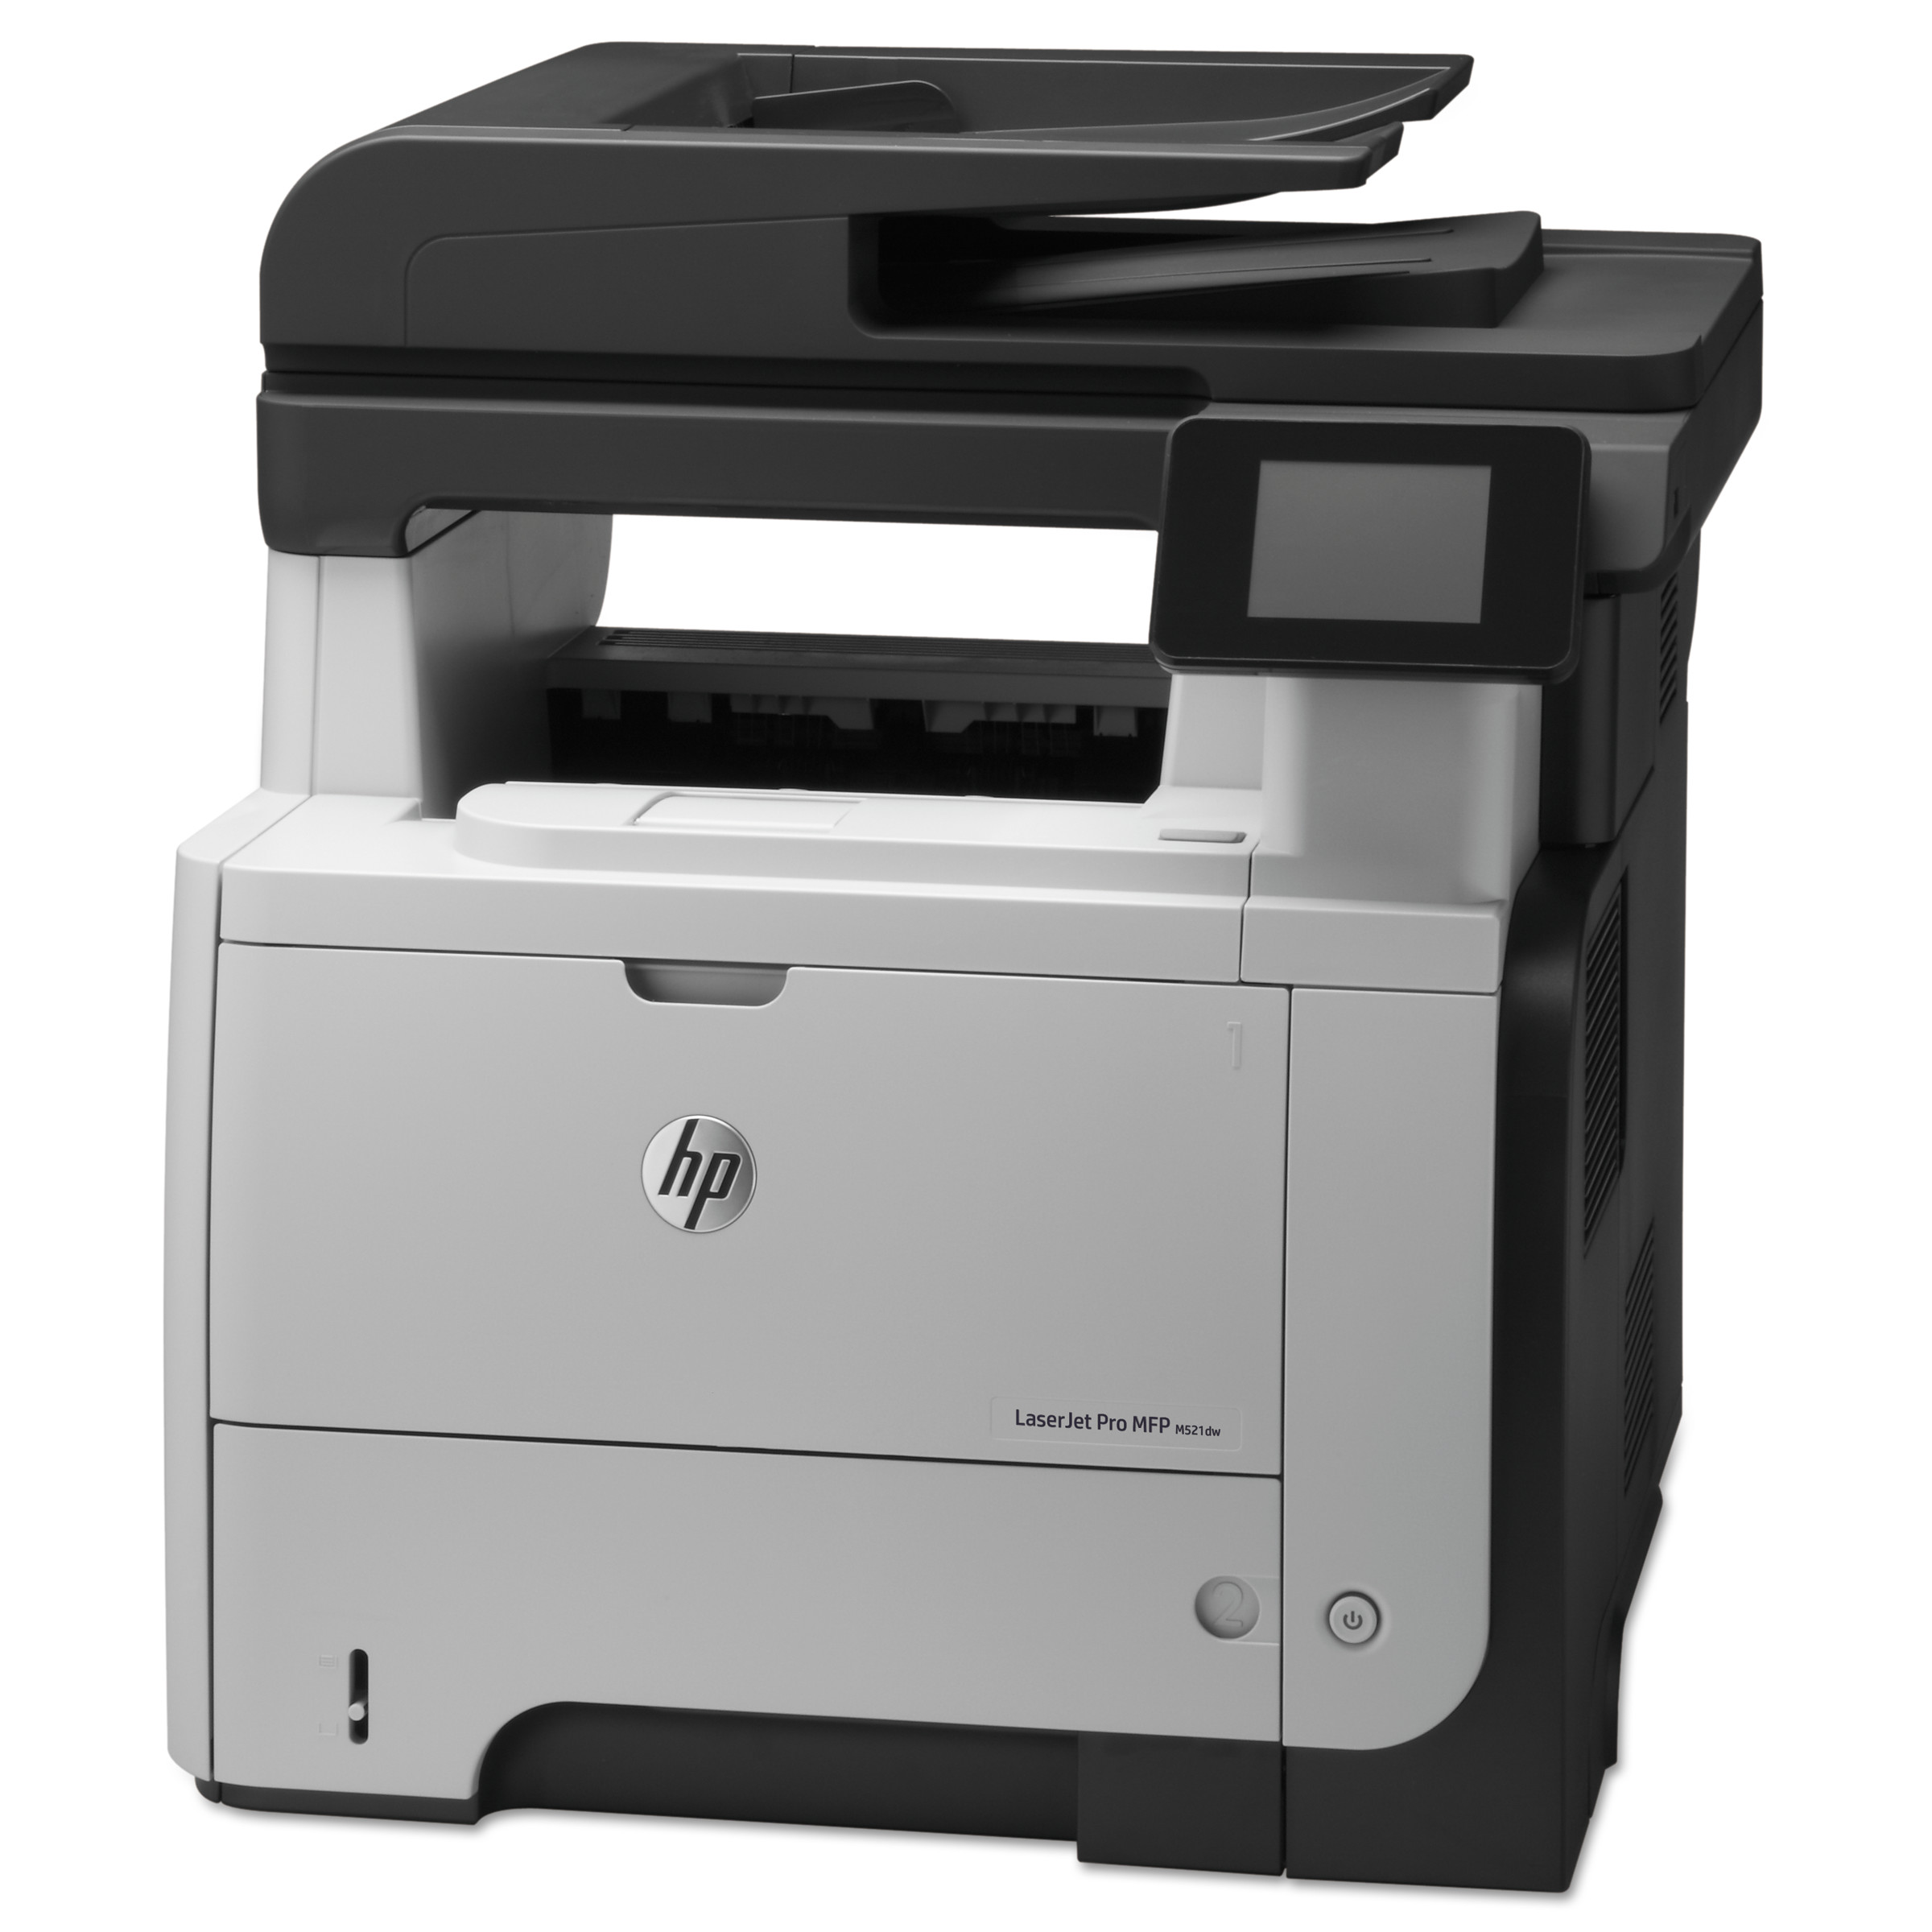 HP LaserJet Pro M521dn Multifunction Laser Printer, Copy Fax Print Scan by HP